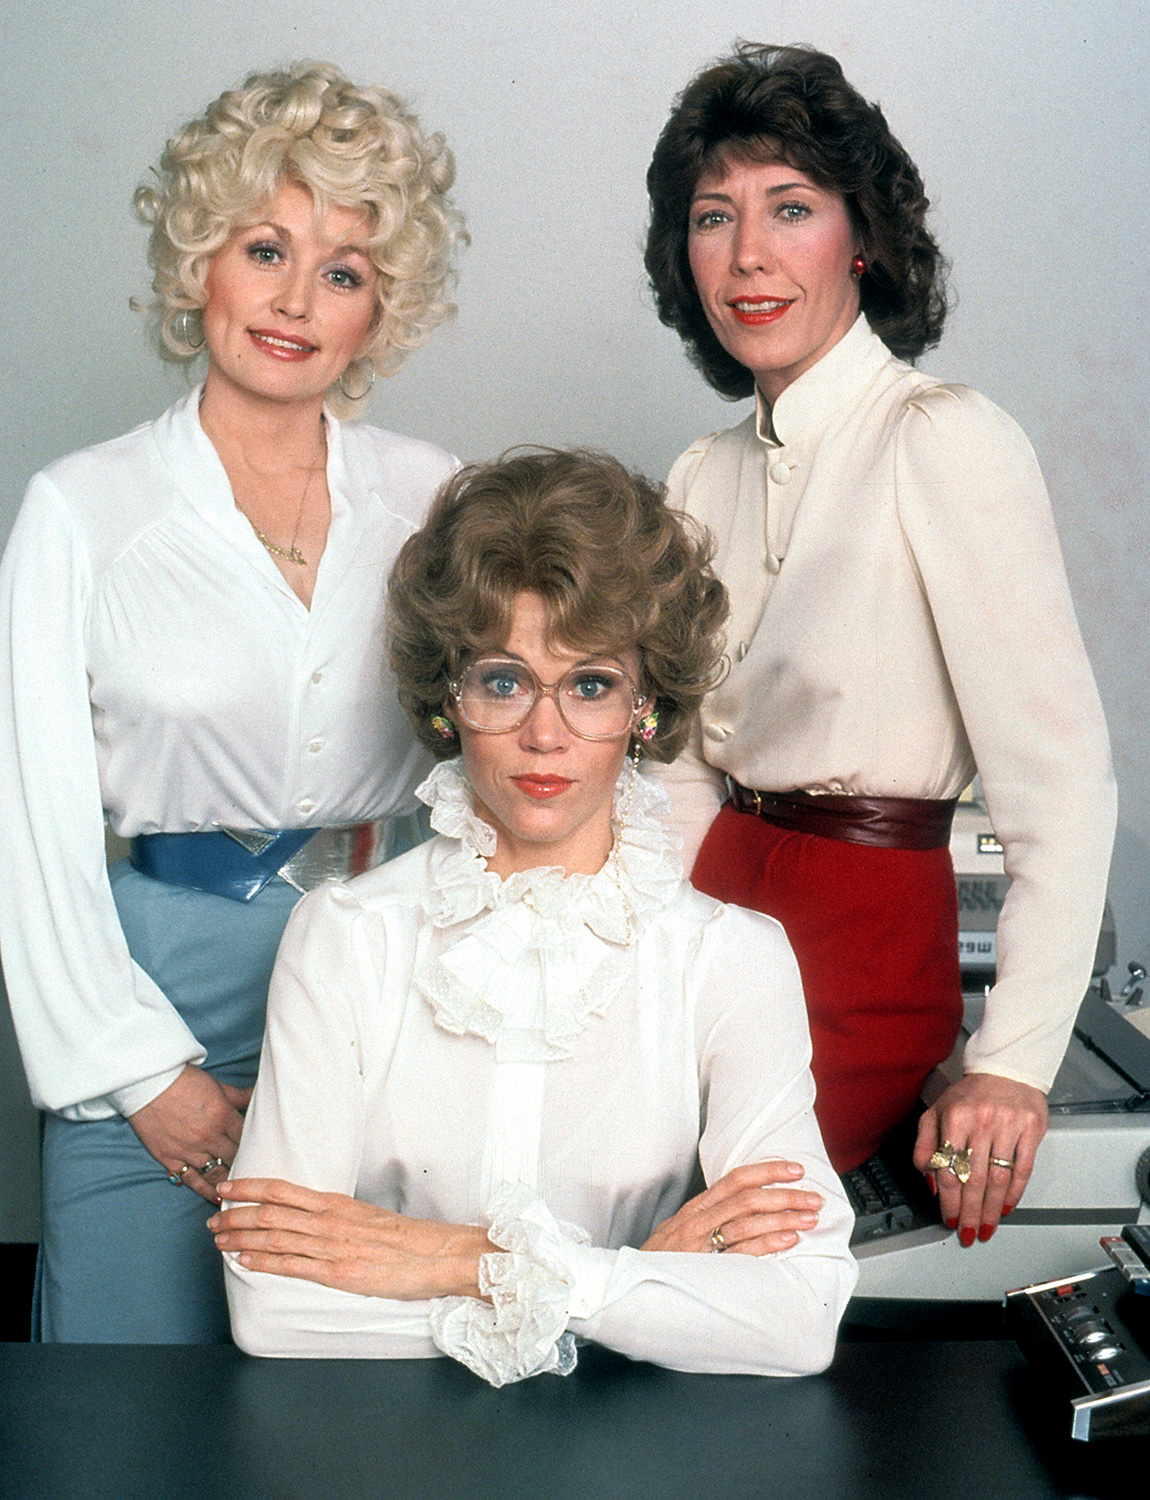 Dolly Parton, Jane Fonda And Lily Tomlin In 'Nine To Five'